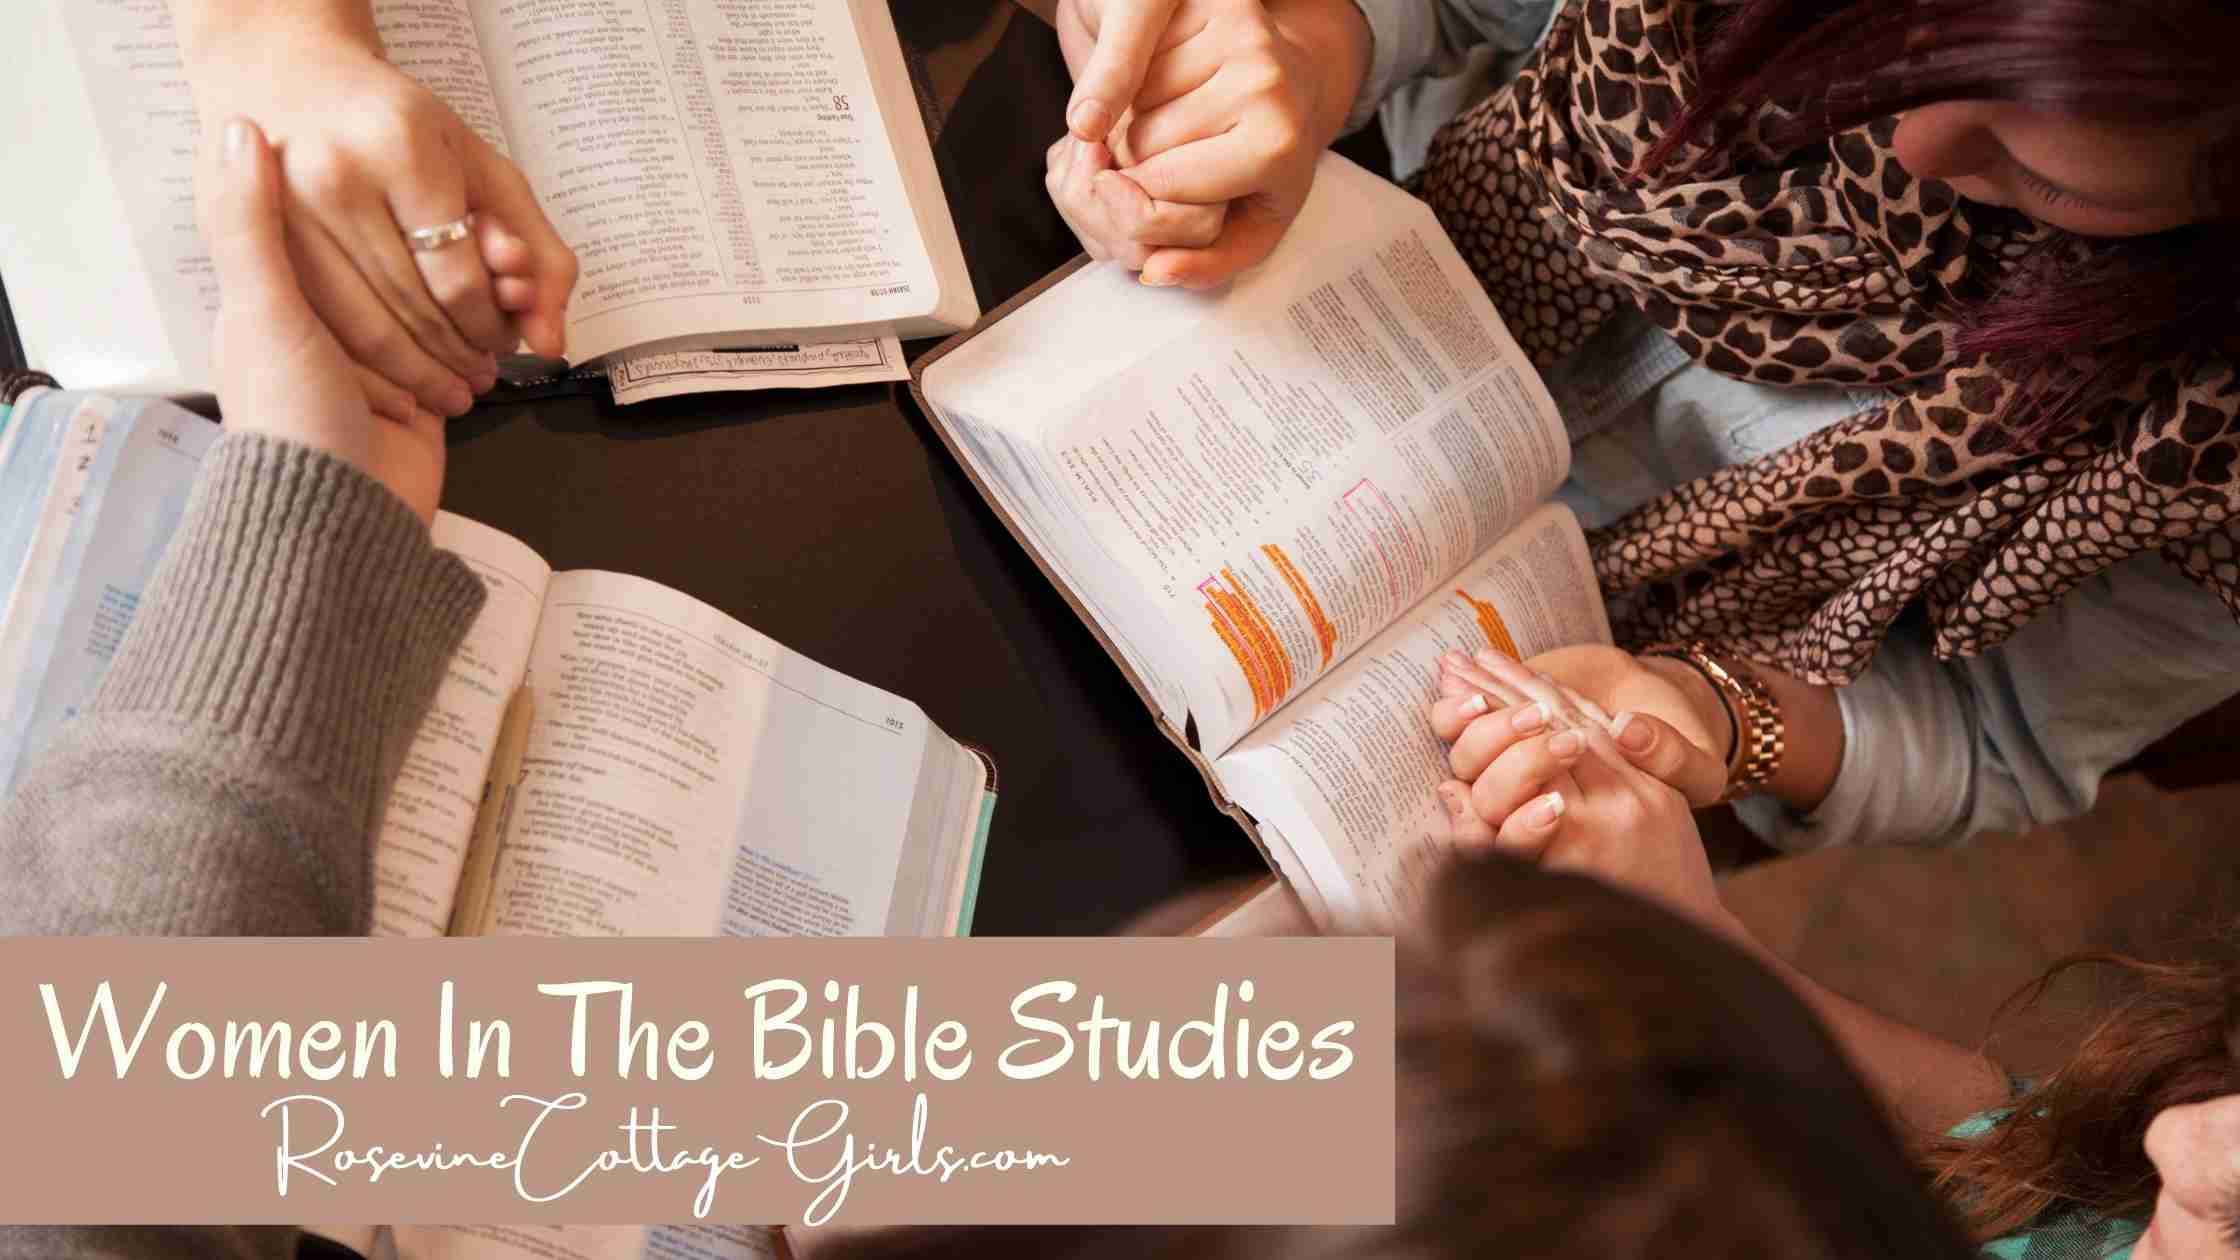 Women In The Bible Study: 10+ Powerful Studies To Strengthen Your Walk